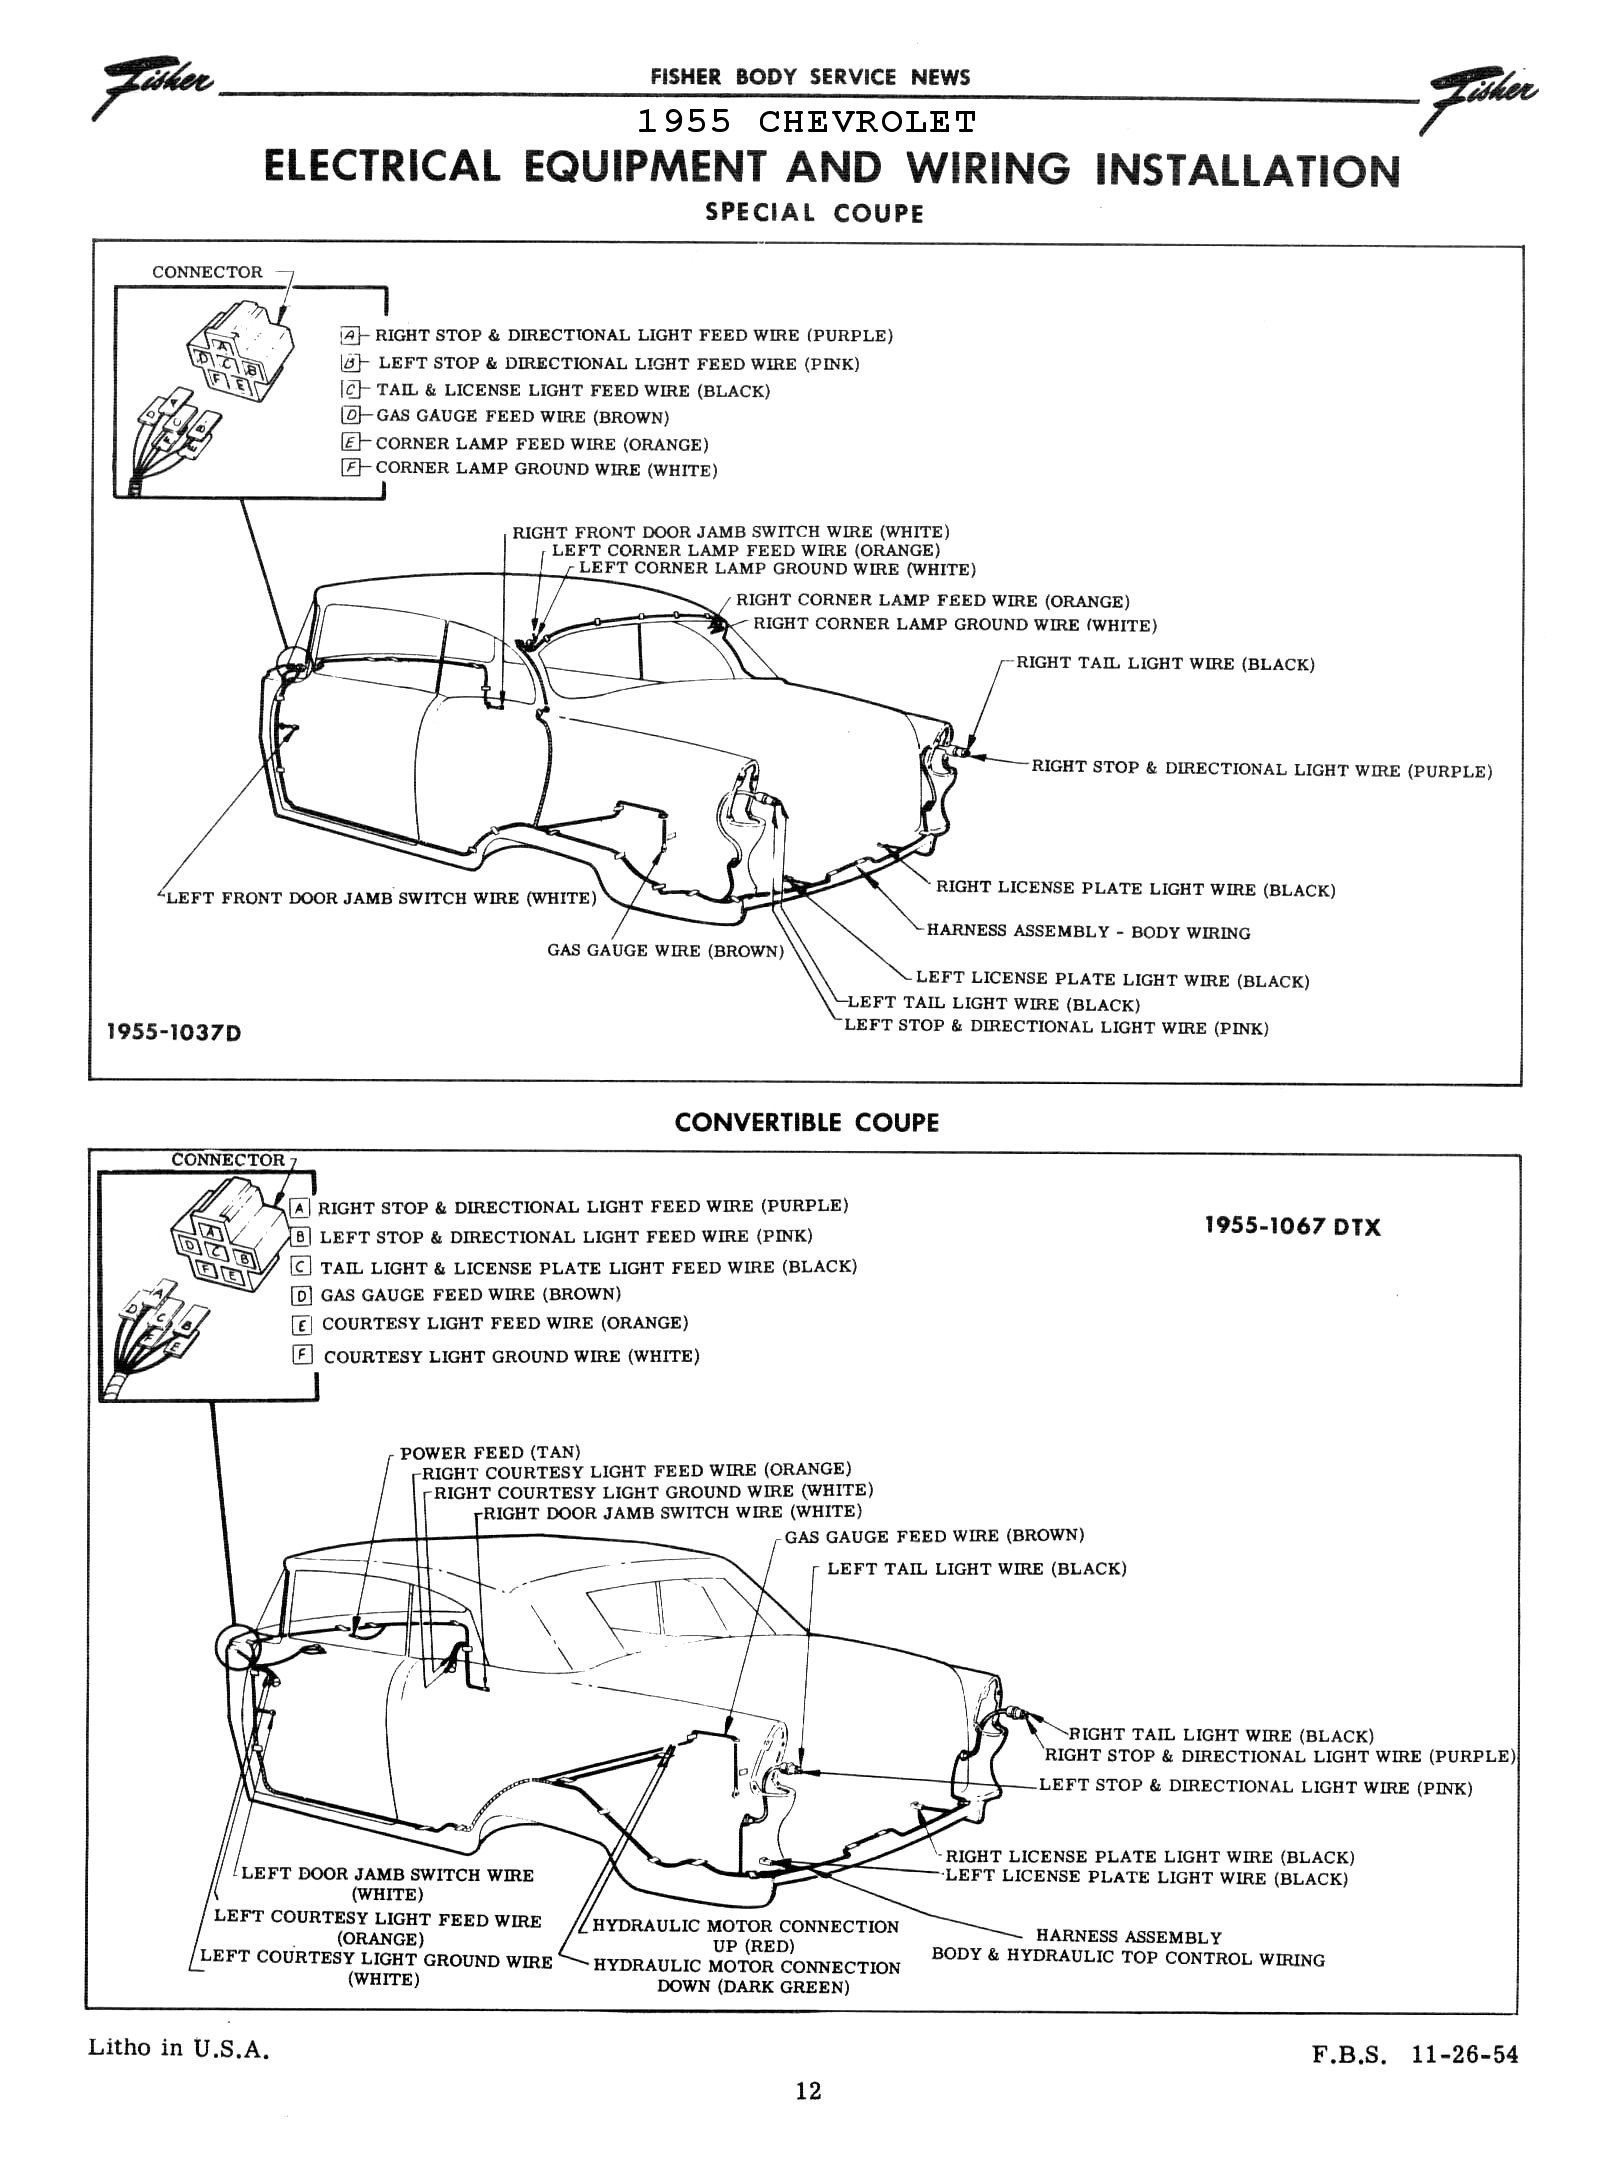 Chevy Wiring Diagrams Head Light Diagram 2000 S10 Blazer 1955 Body 3